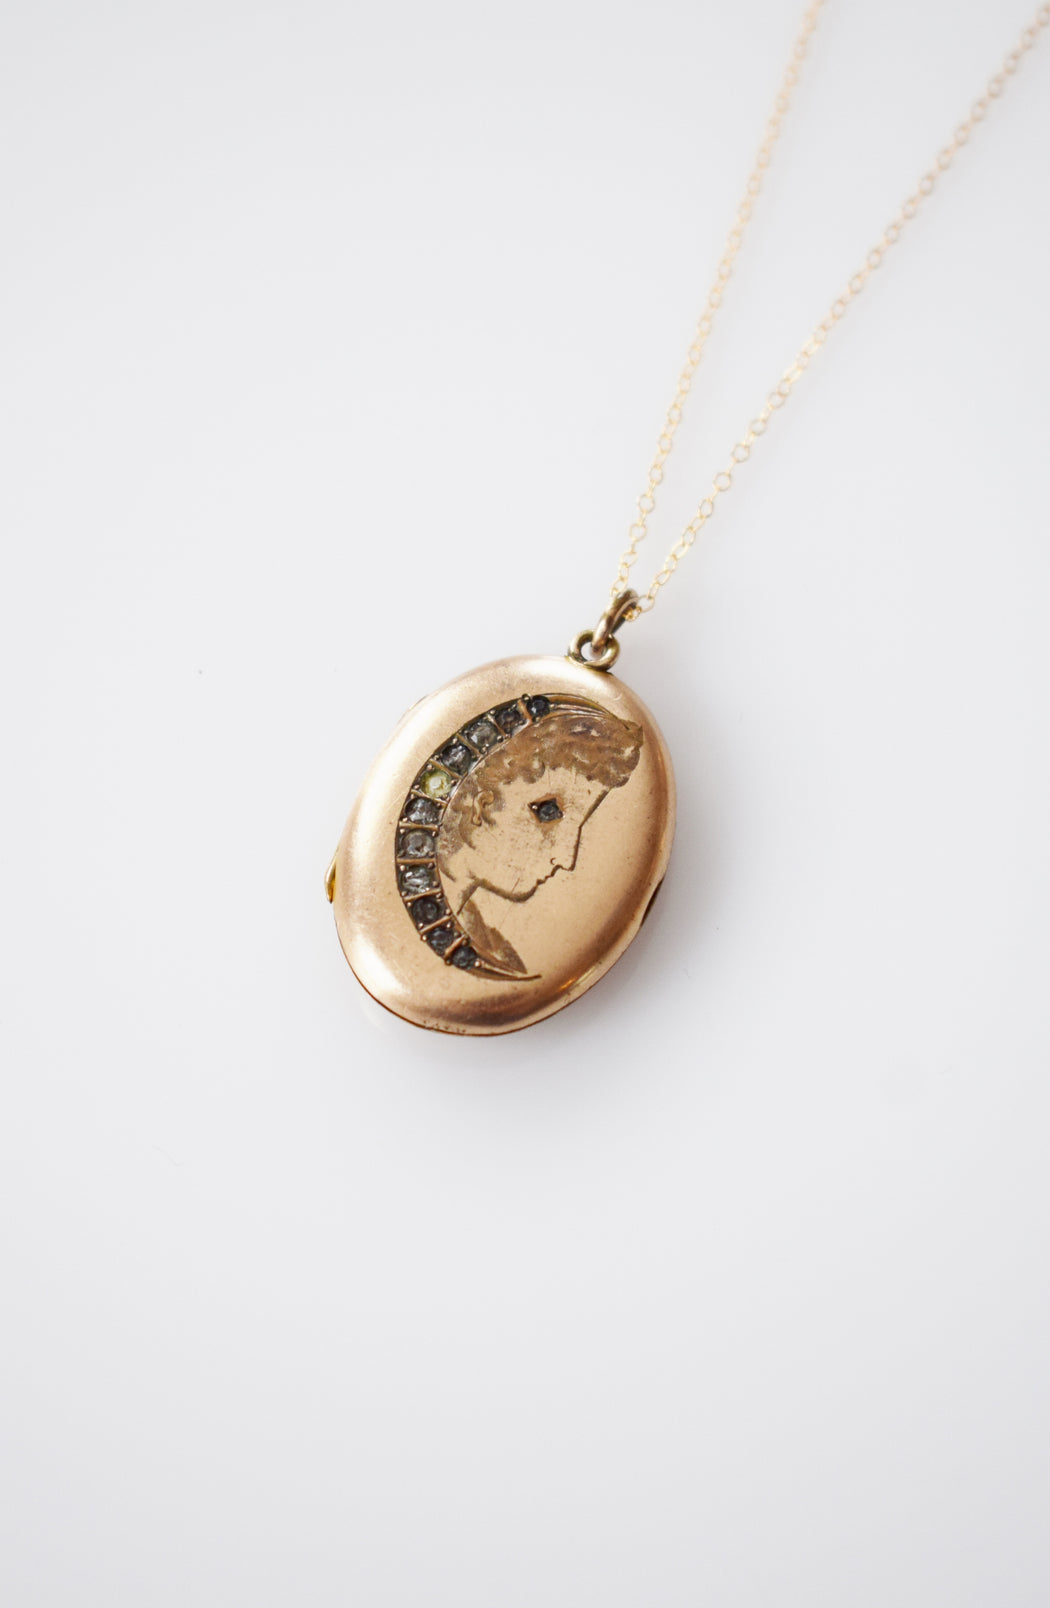 Antique Lady in the Moon Locket